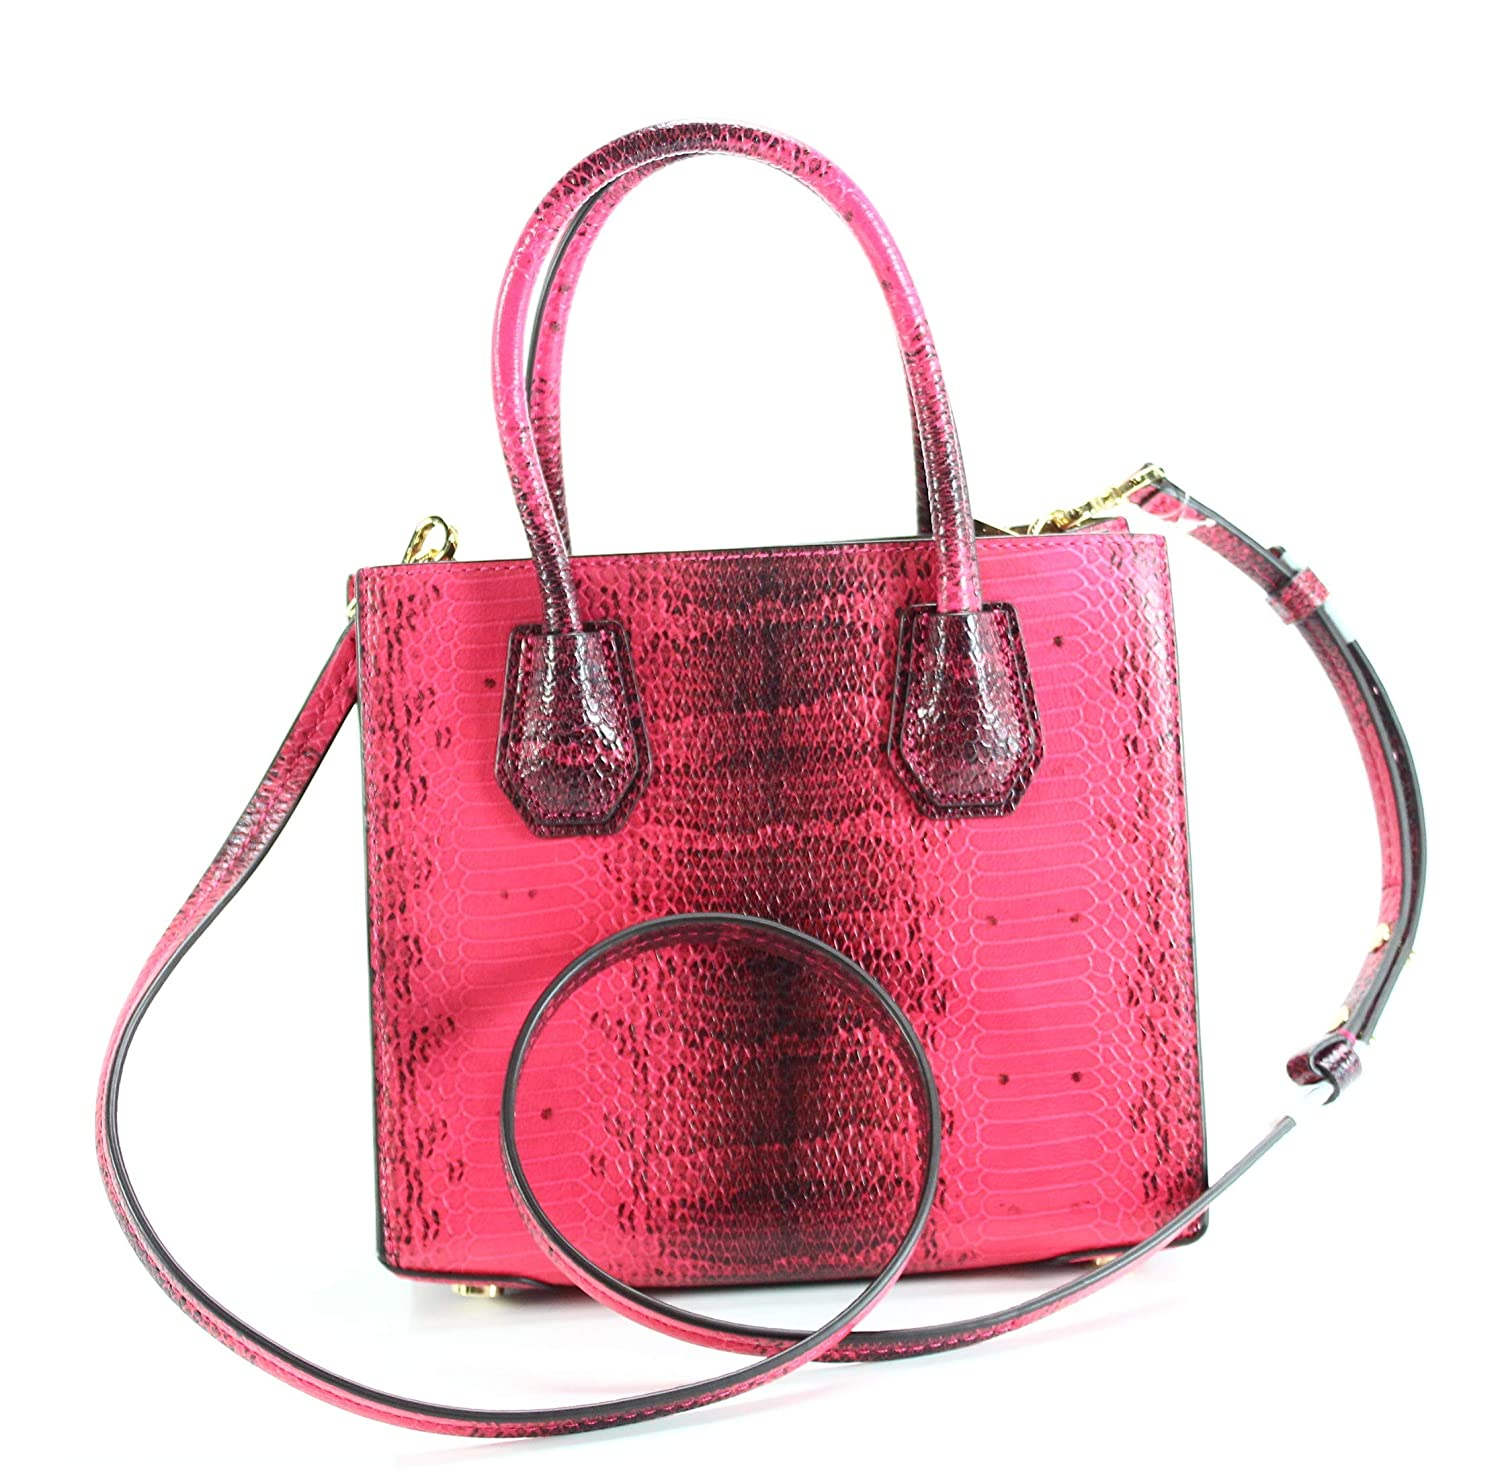 bf051ca5a0e7 Amazon.com  Michael Kors Mercer Embossed Leather Crossbody ULTRA PINK  Shoes